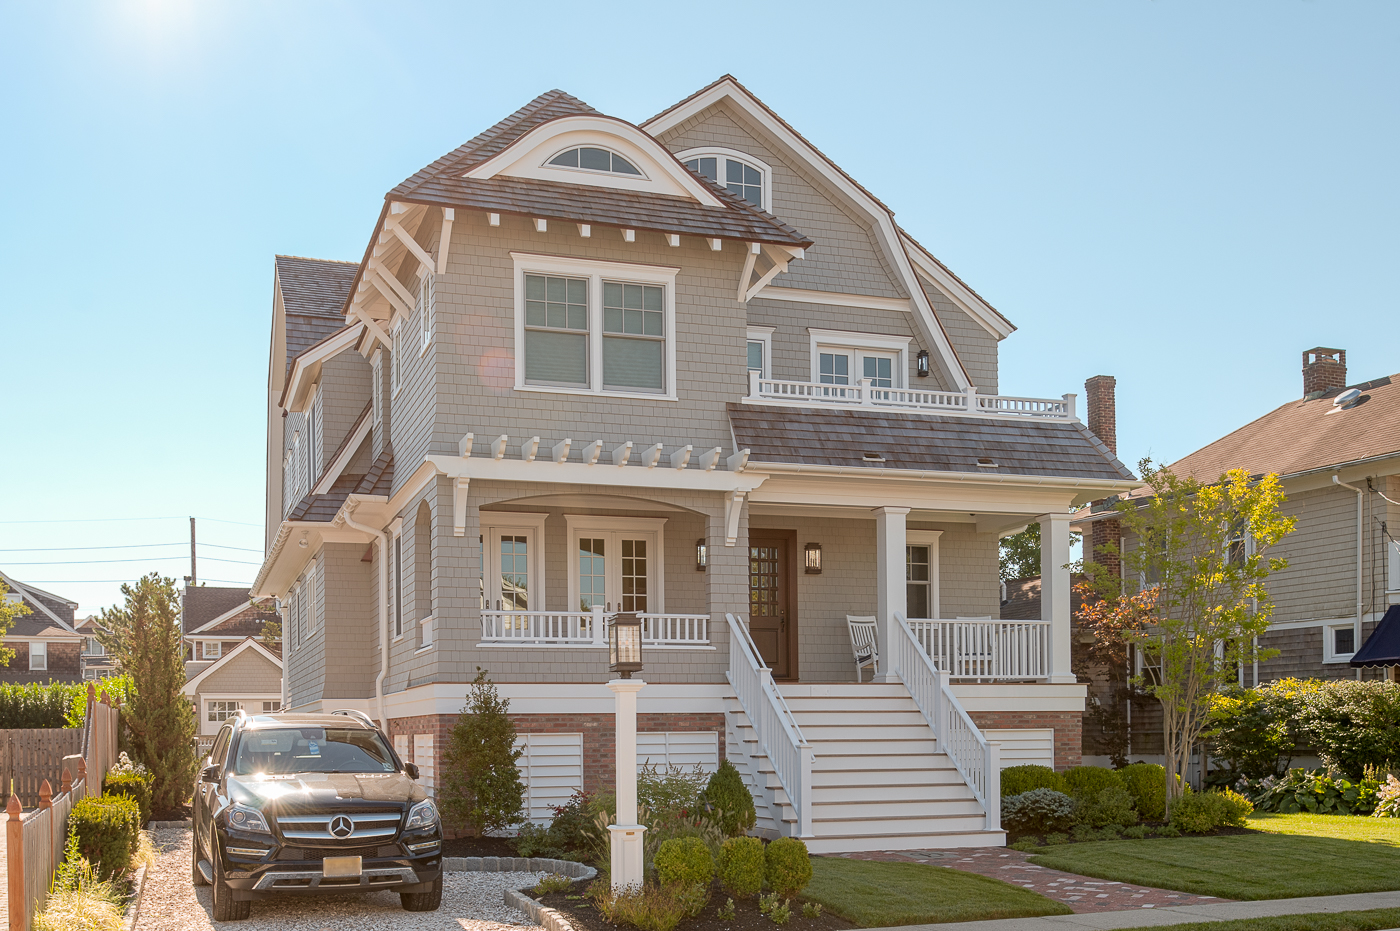 Light neutral colored tan siding with white trim, square columns and railings. Red brick veneer. Brown stained front door. Brown shingled roof. Beautiful beach house design.